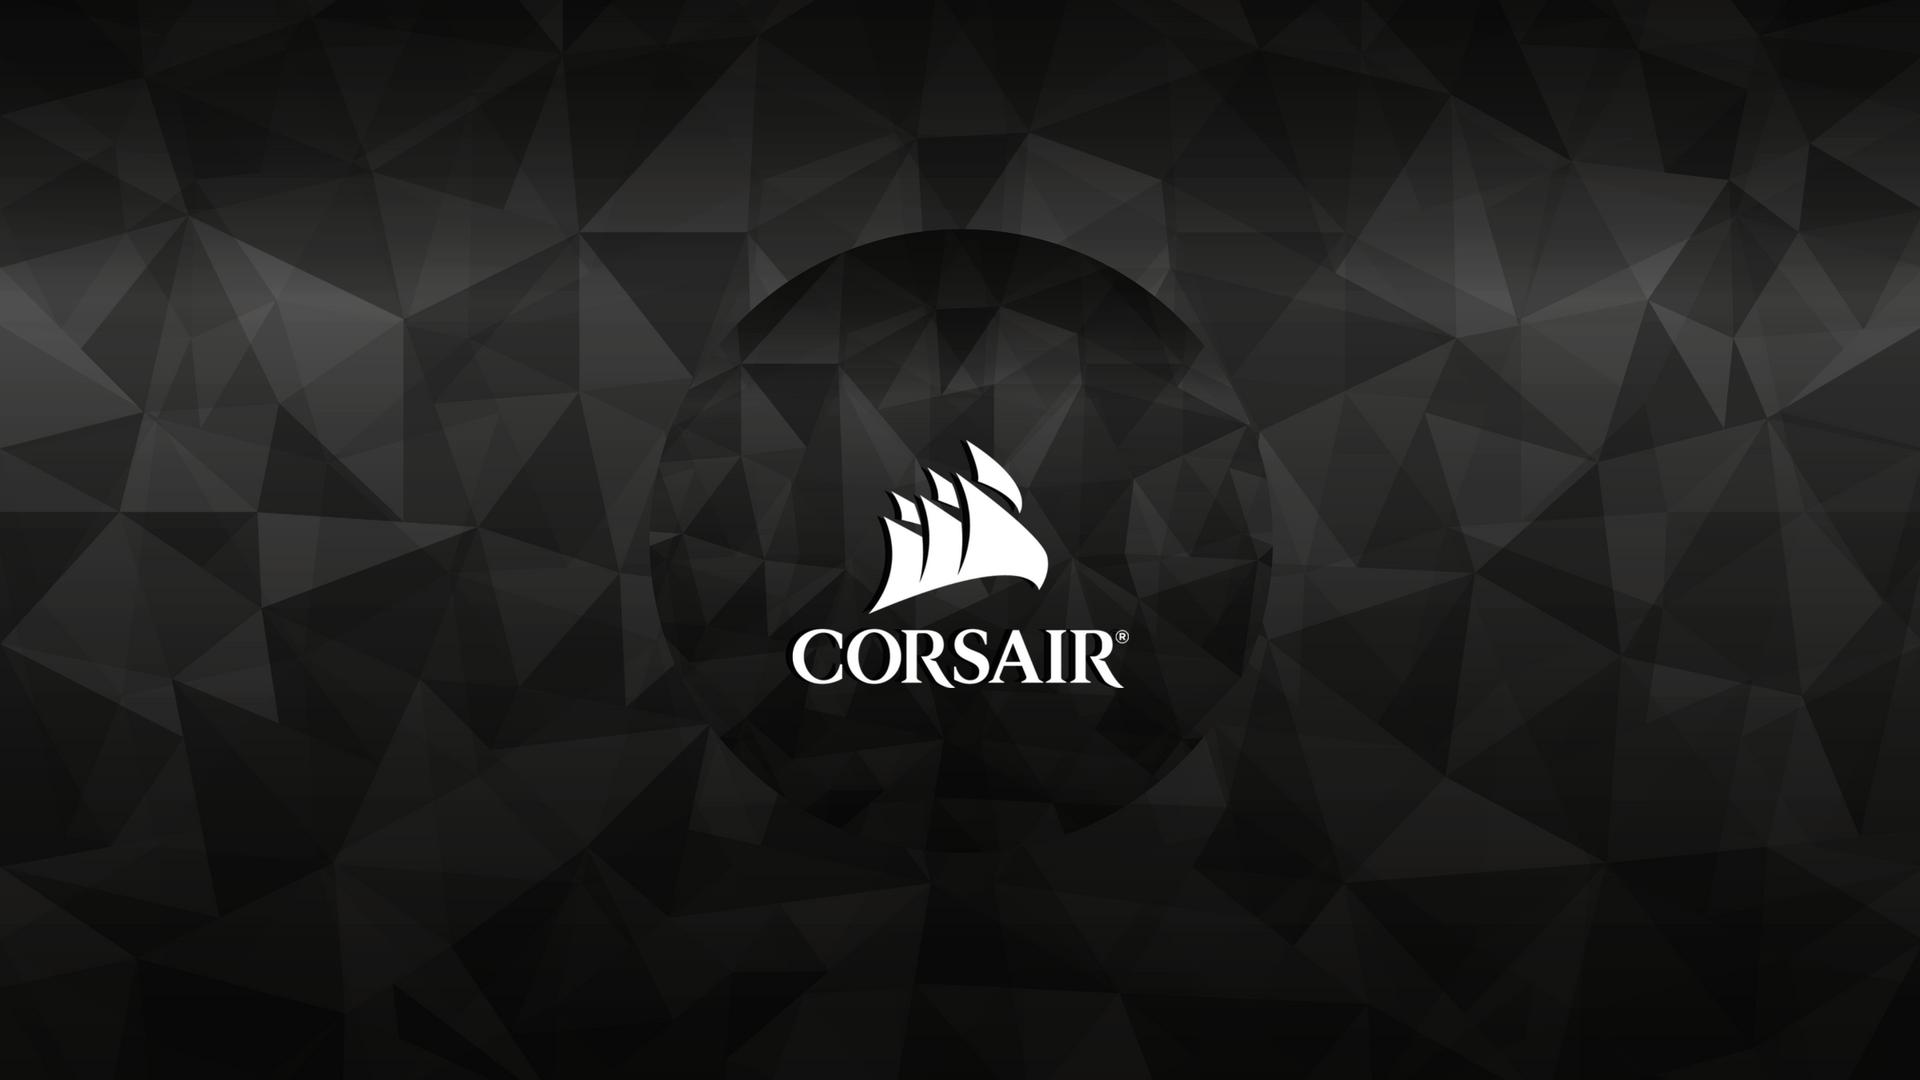 CORSAIR For Gamers (Audio headsets for gaming, Keyboards, Mice, Mouse Pads)